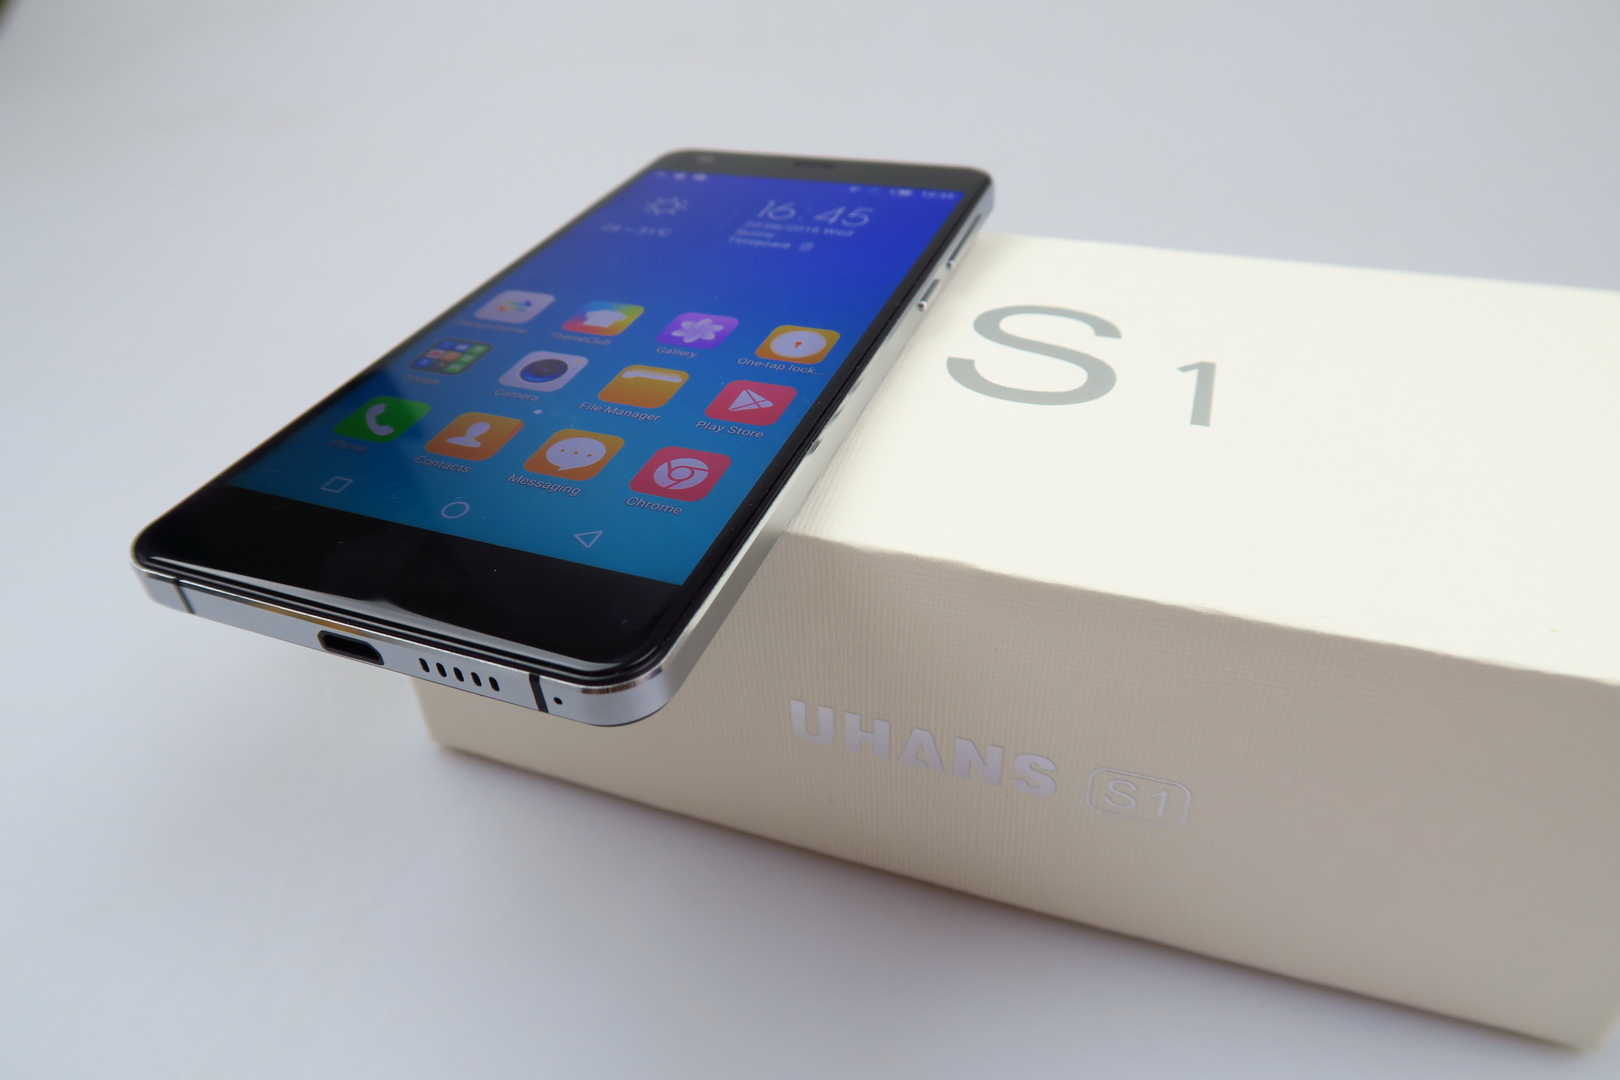 UHANS S1 Unboxing: Loads of Accessories and an iPhone 4 Lookalike ...